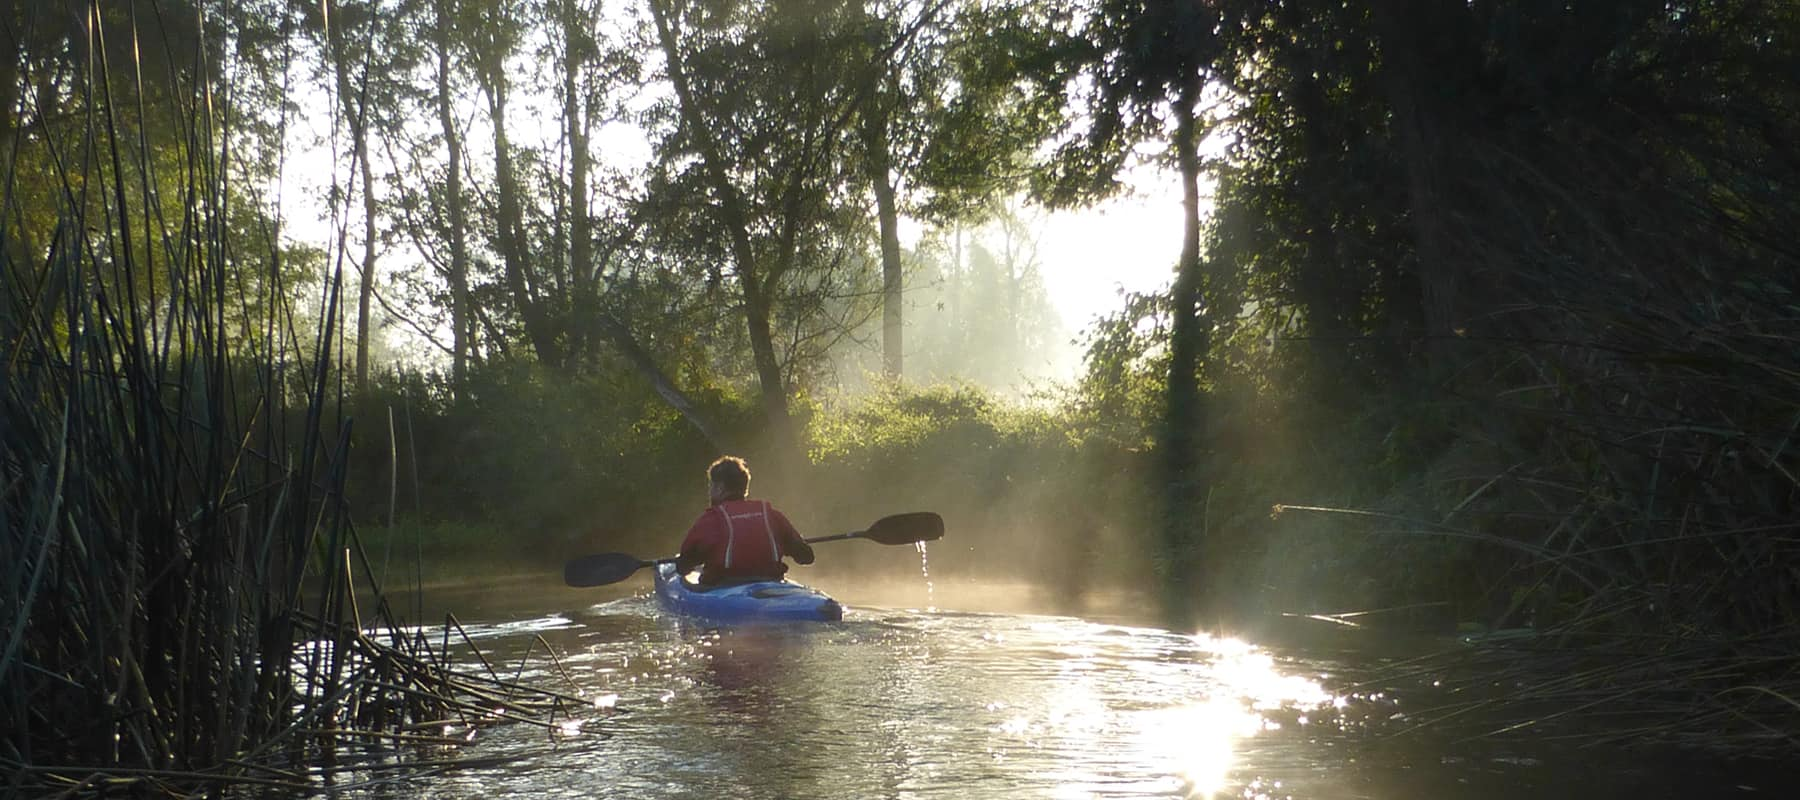 About Us. About the Canoe Foundation. Male paddler on leafy river.